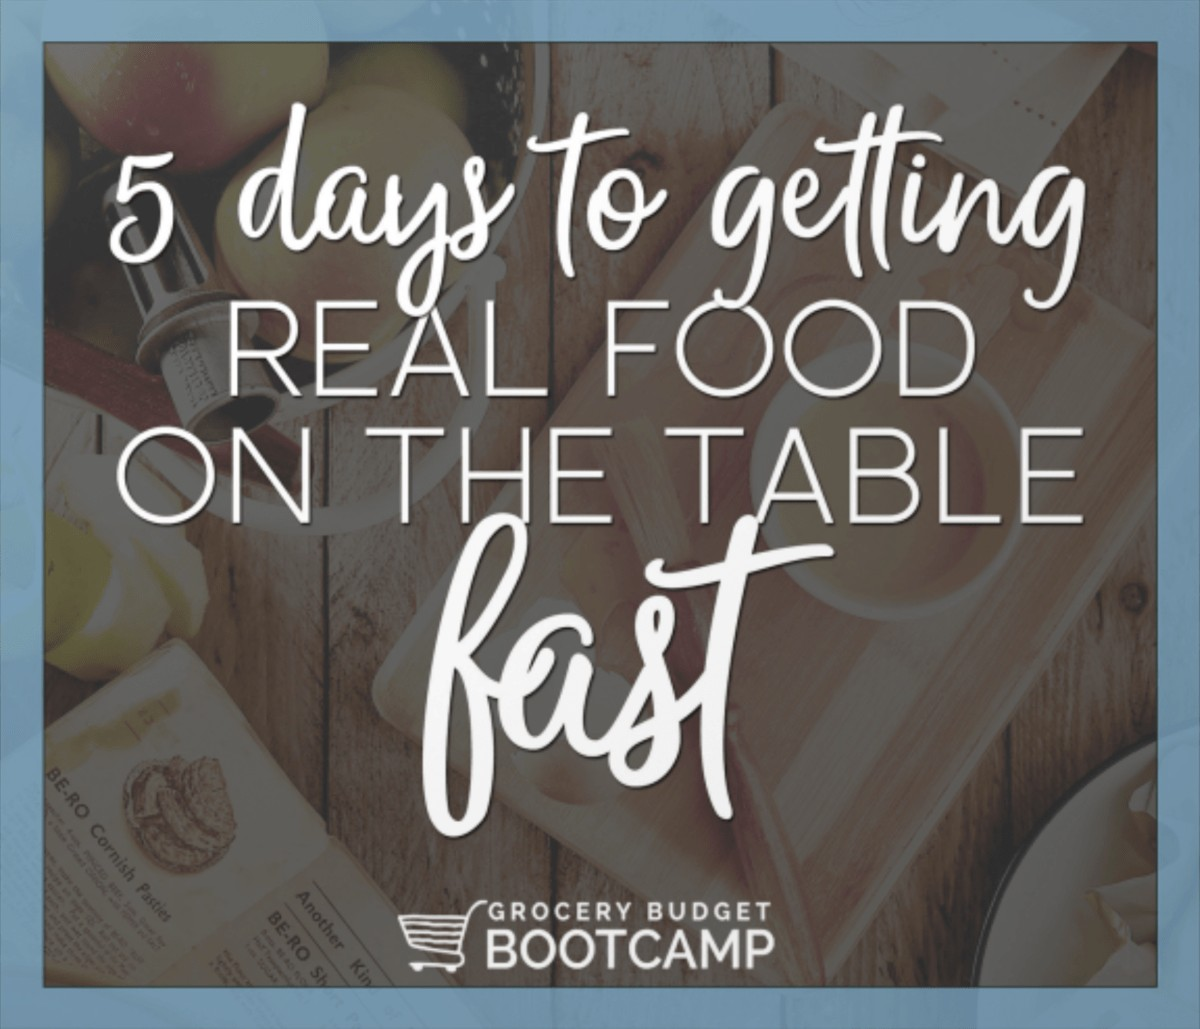 Get real food on the table fast with grocery budget bootcamp